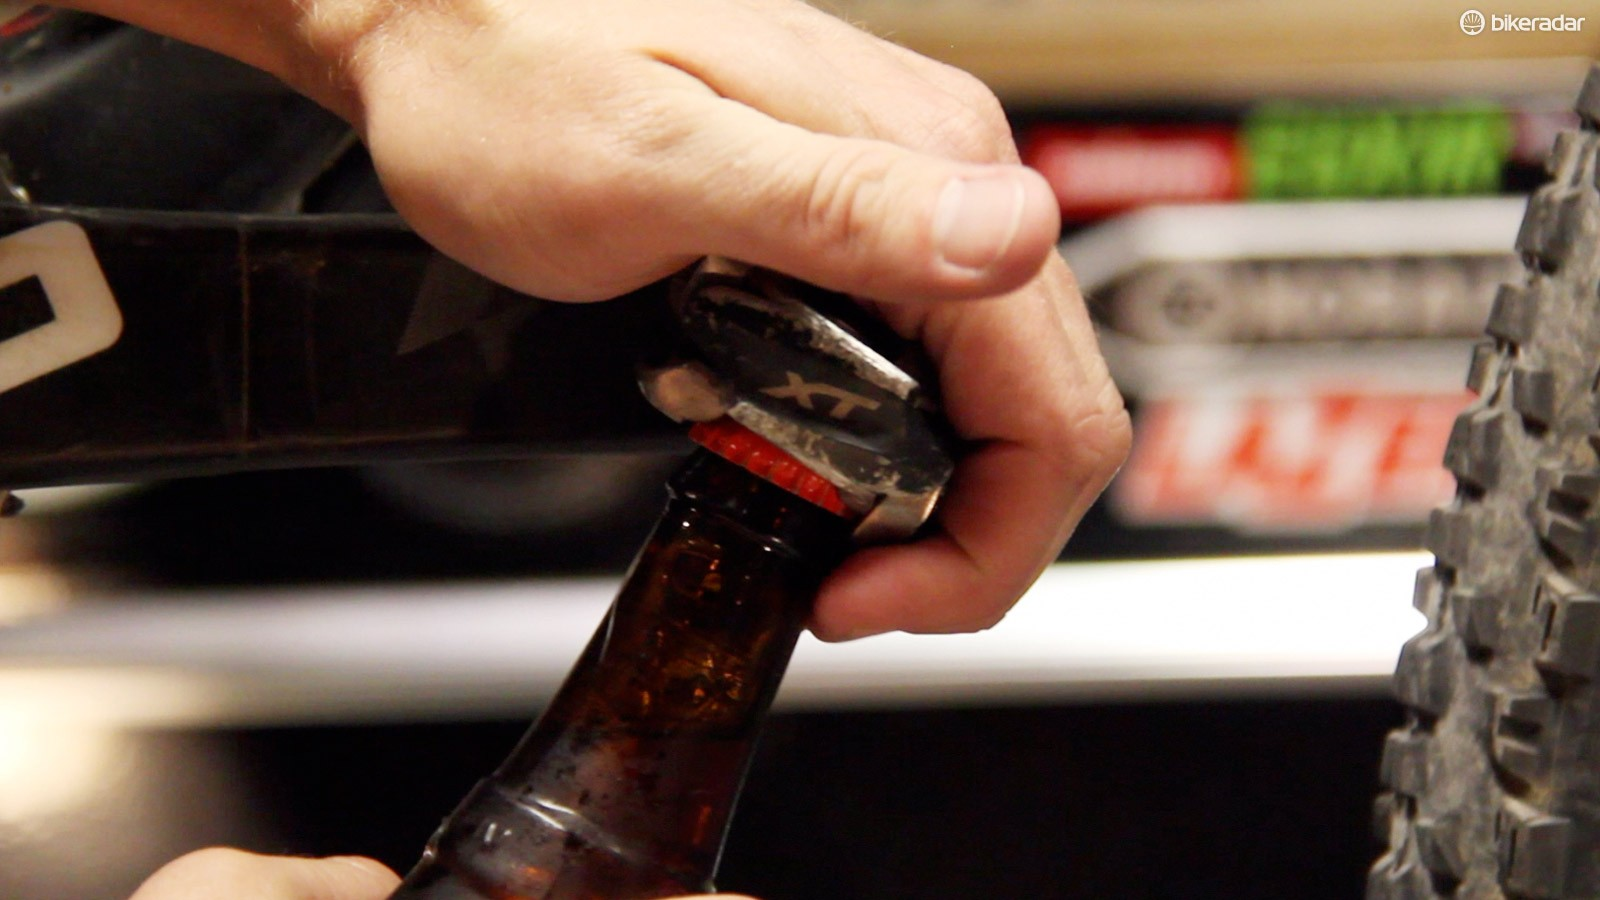 Shimano SPD pedals make excellent bottle openers